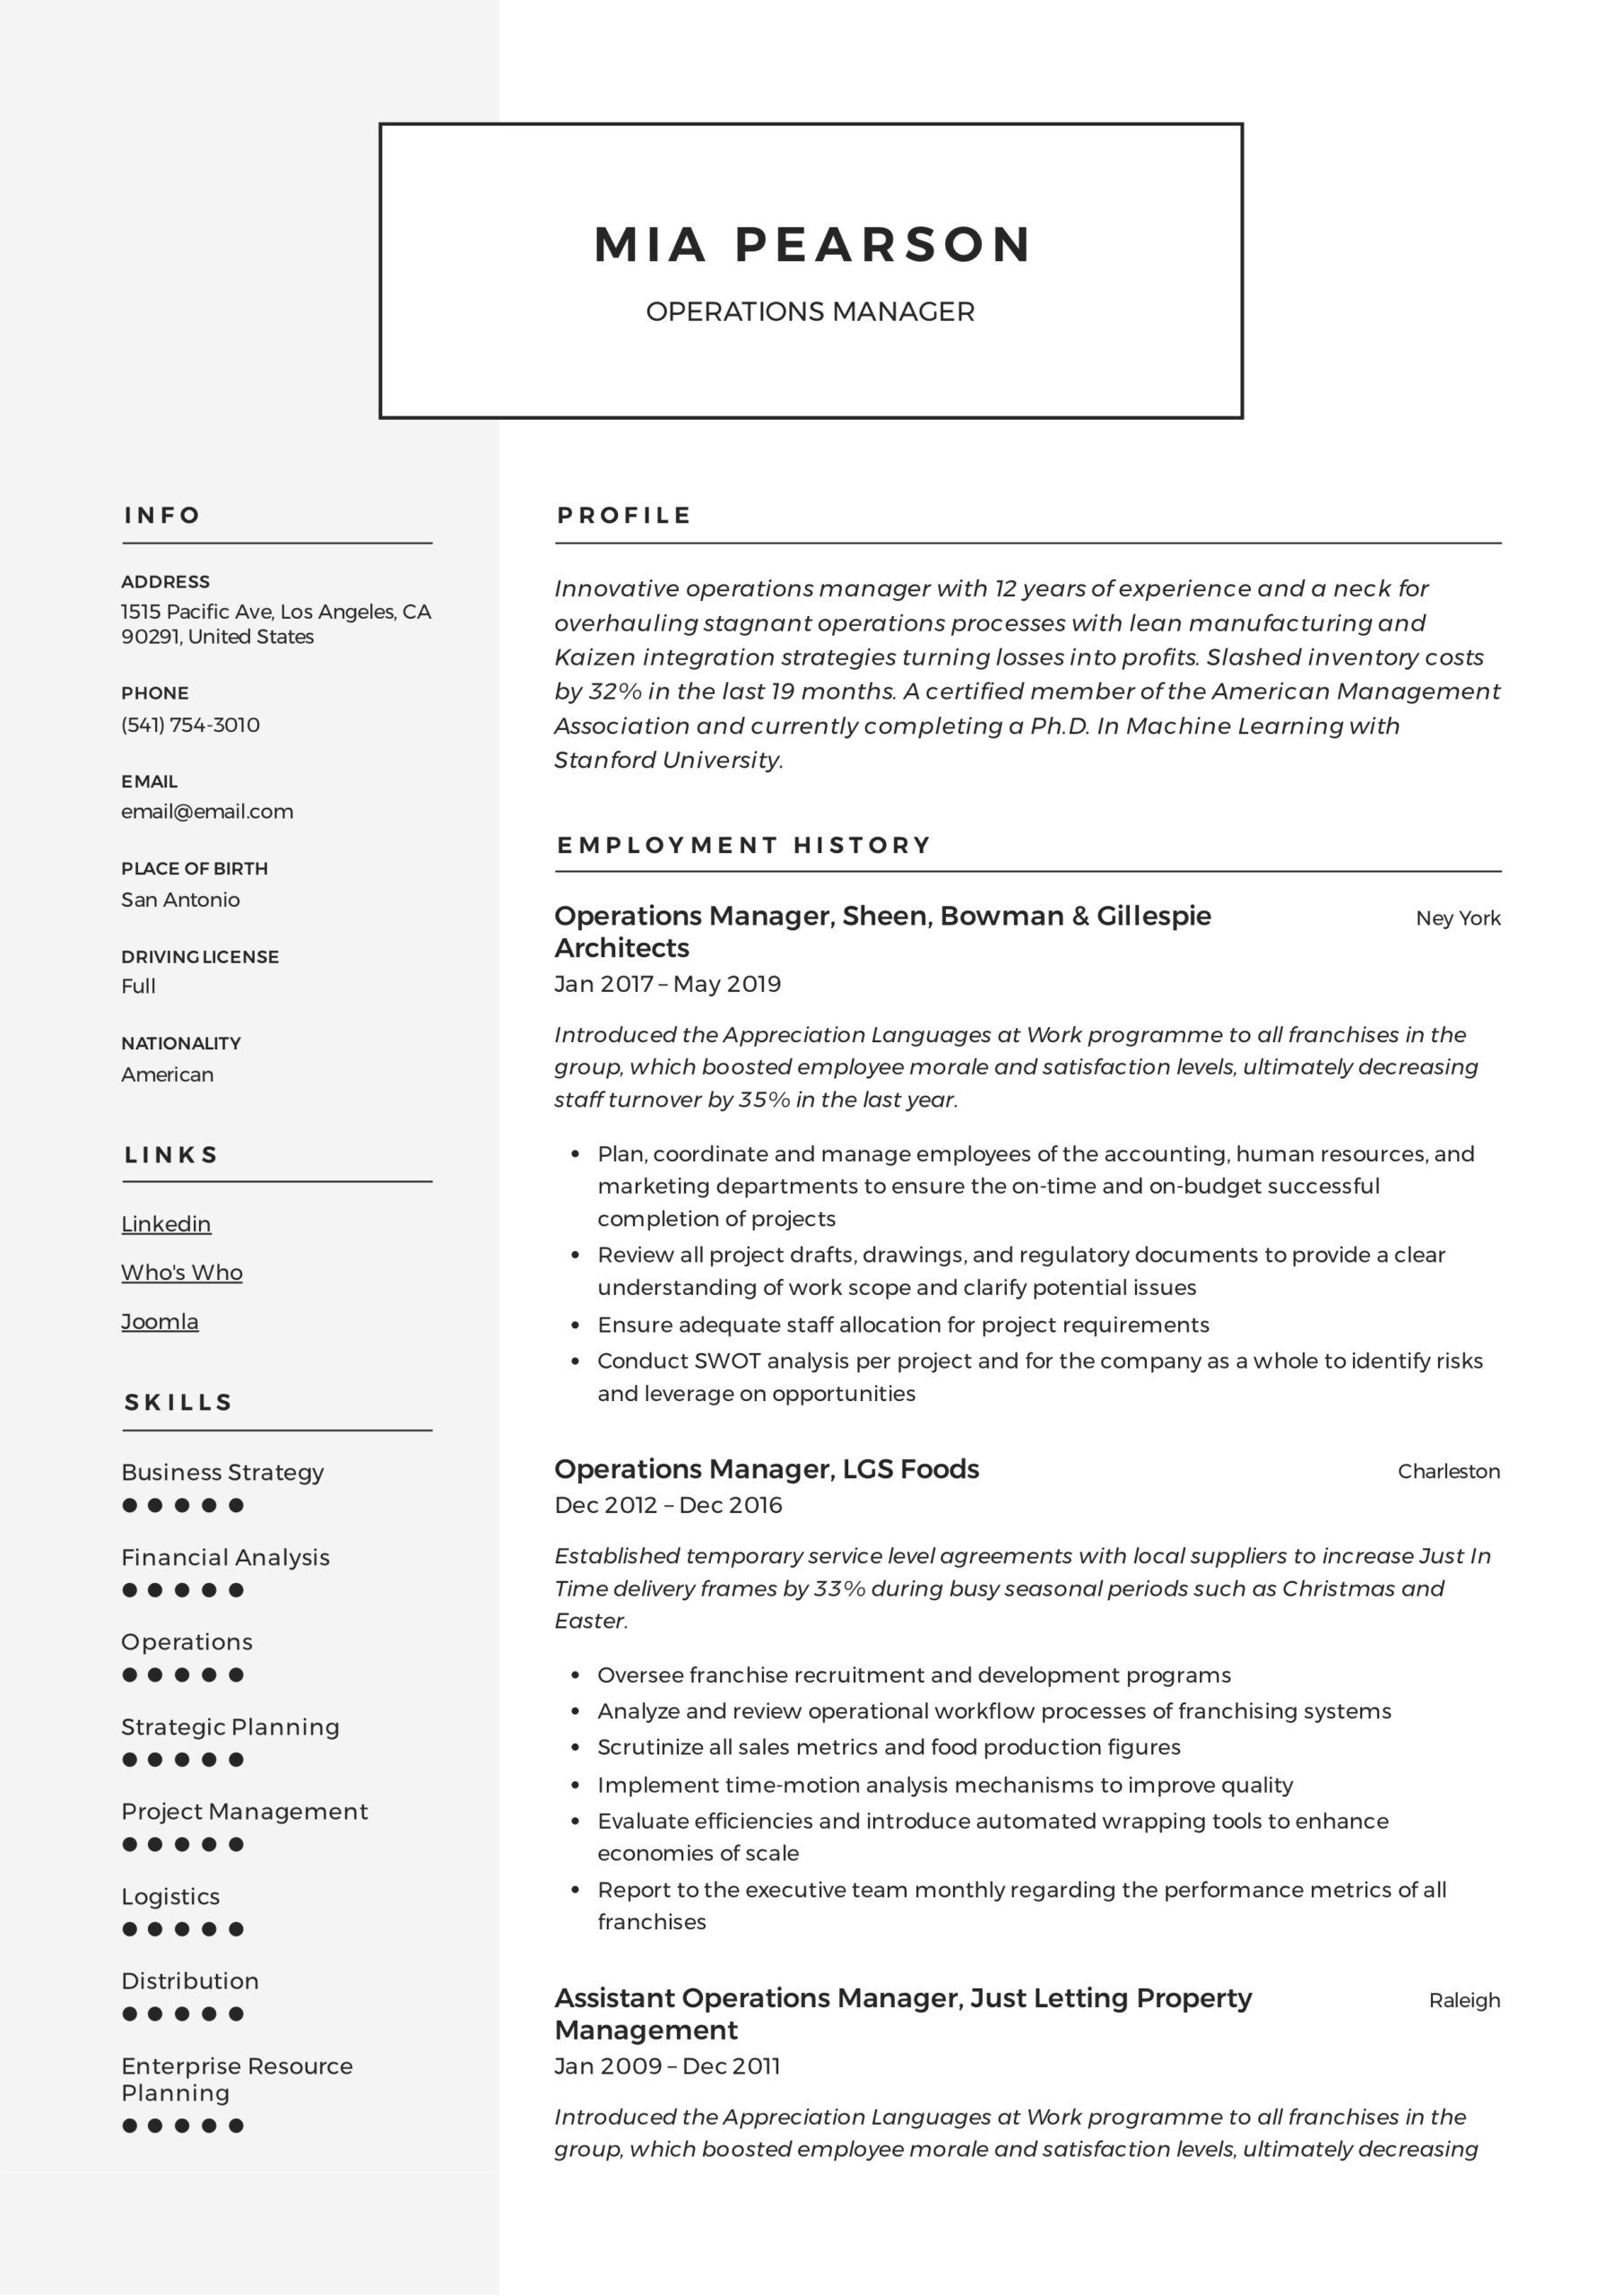 operations manager resume writing guide examples pdf summary for example latest templates Resume Operations Manager Summary For Resume